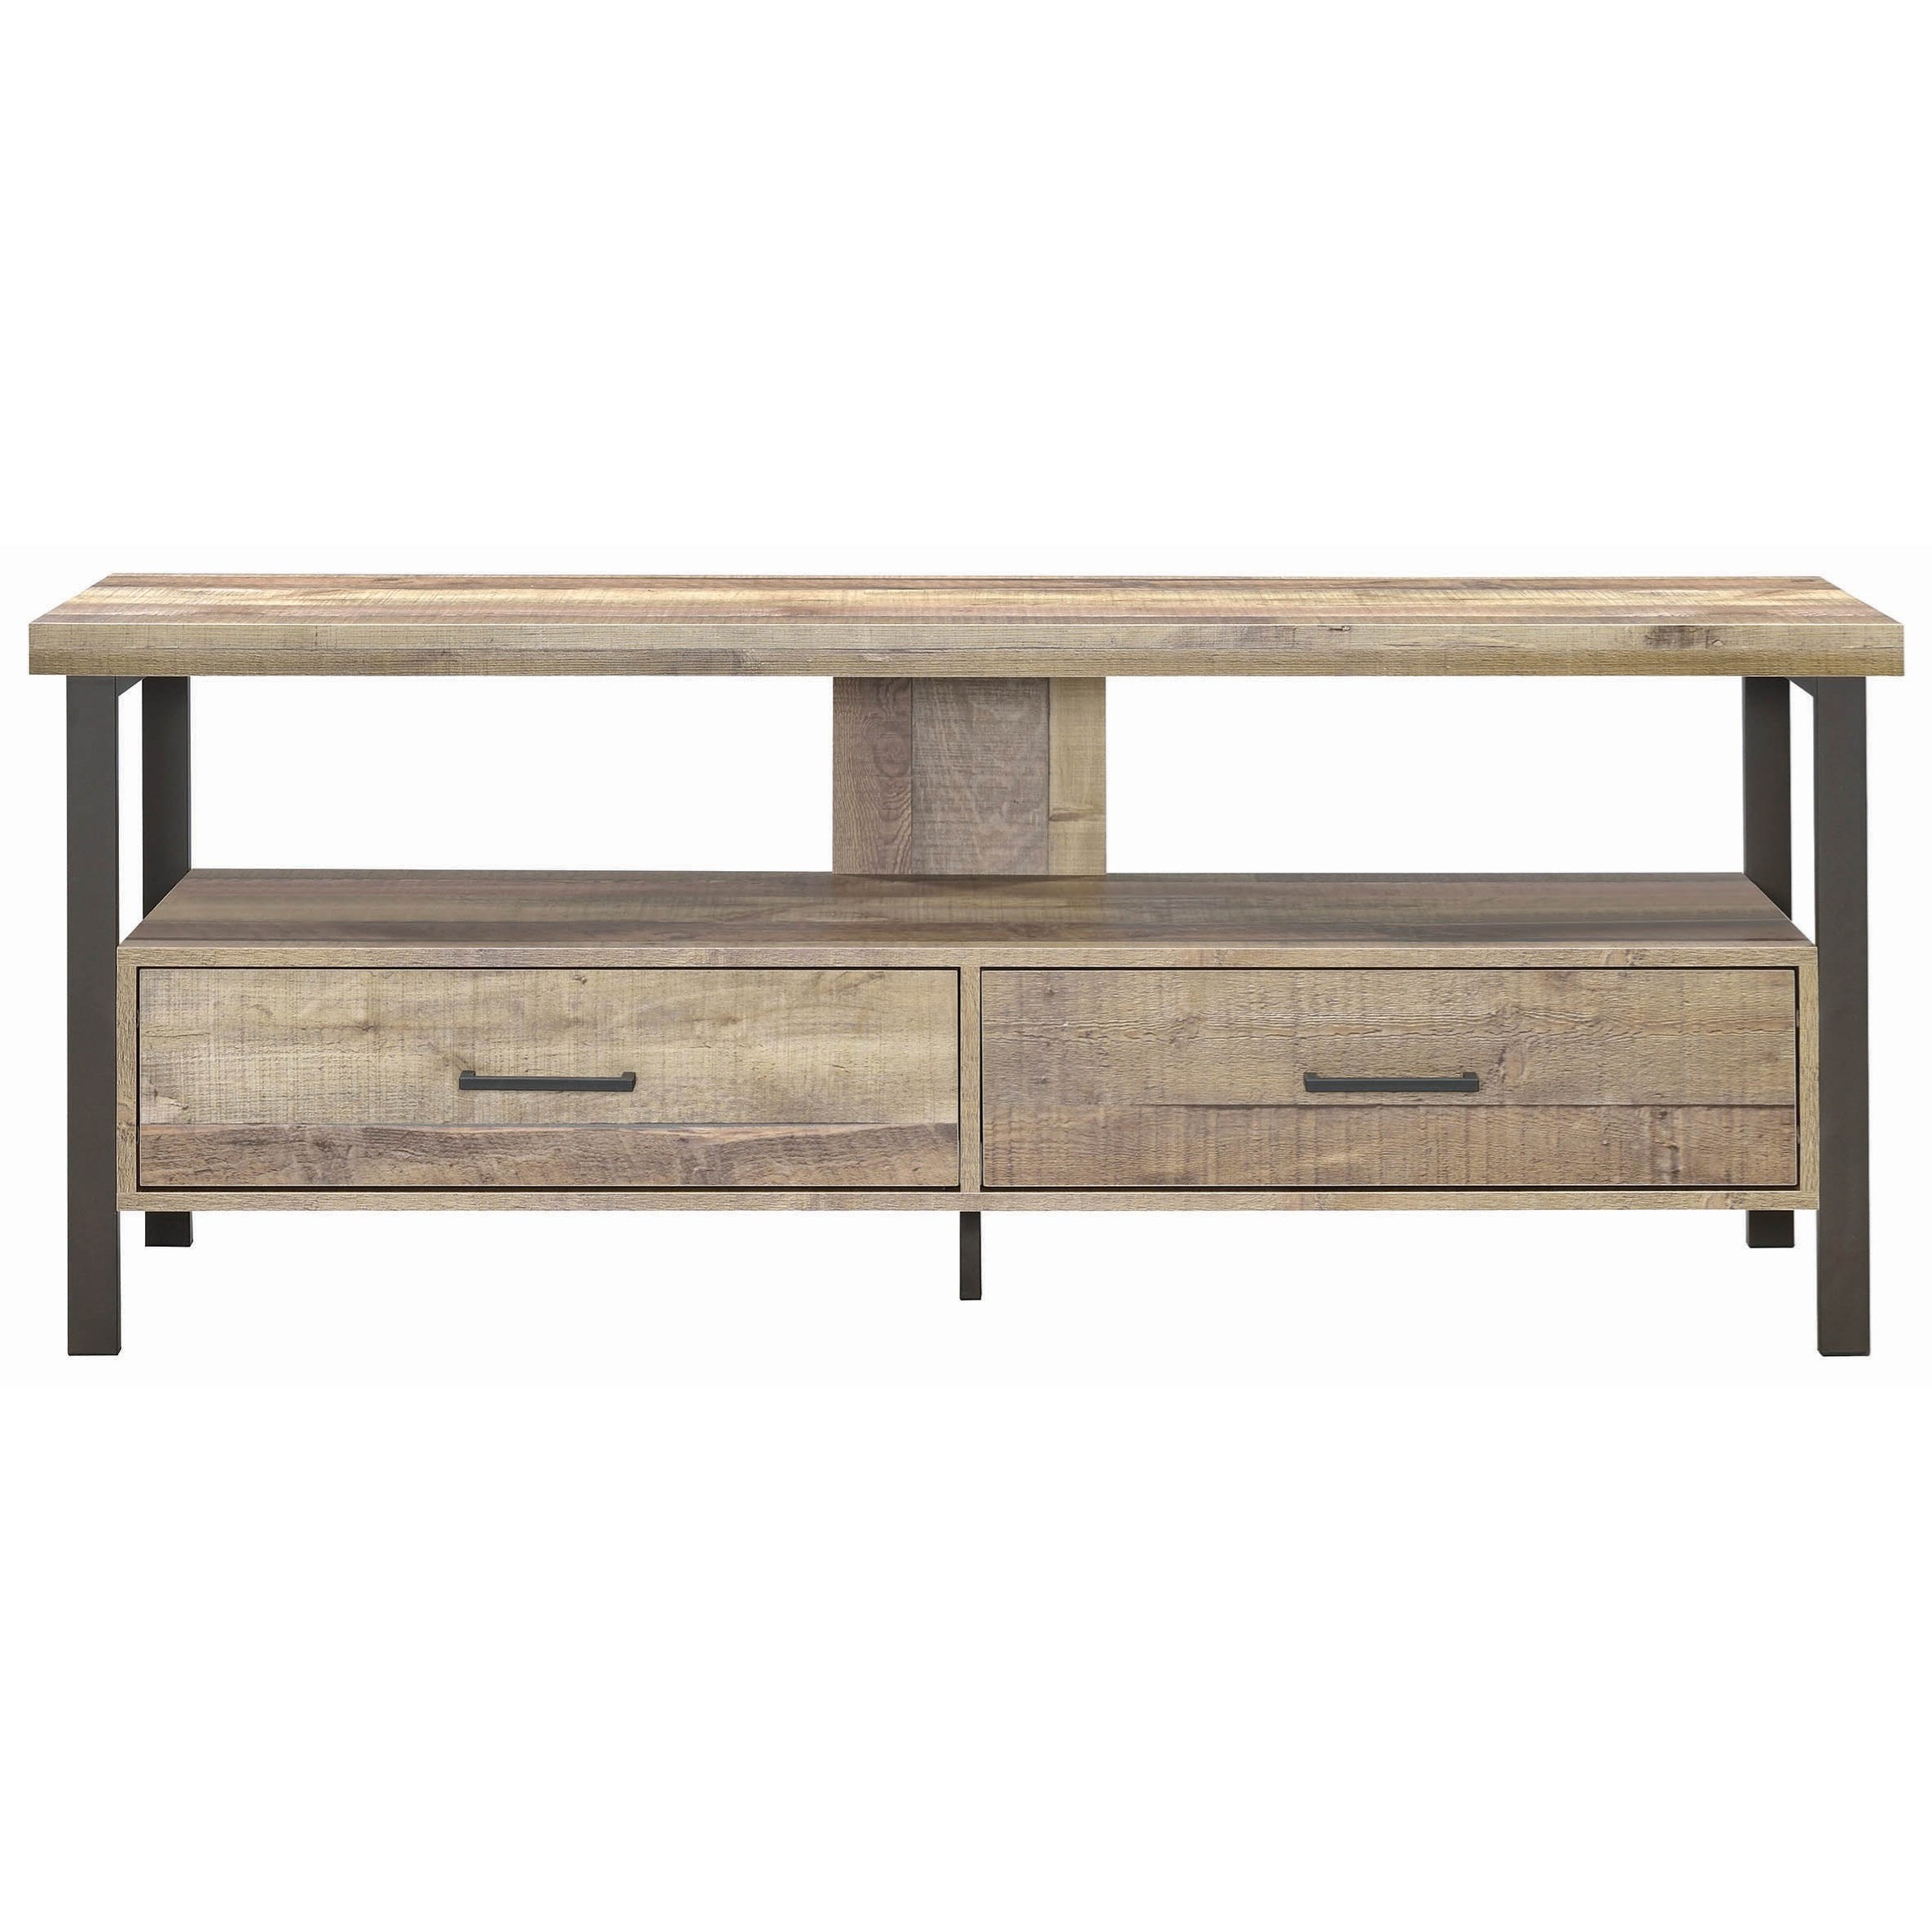 "Levitz Home Furnishings: Coaster TV Stands 721881 Industrial 59"" TV Console"